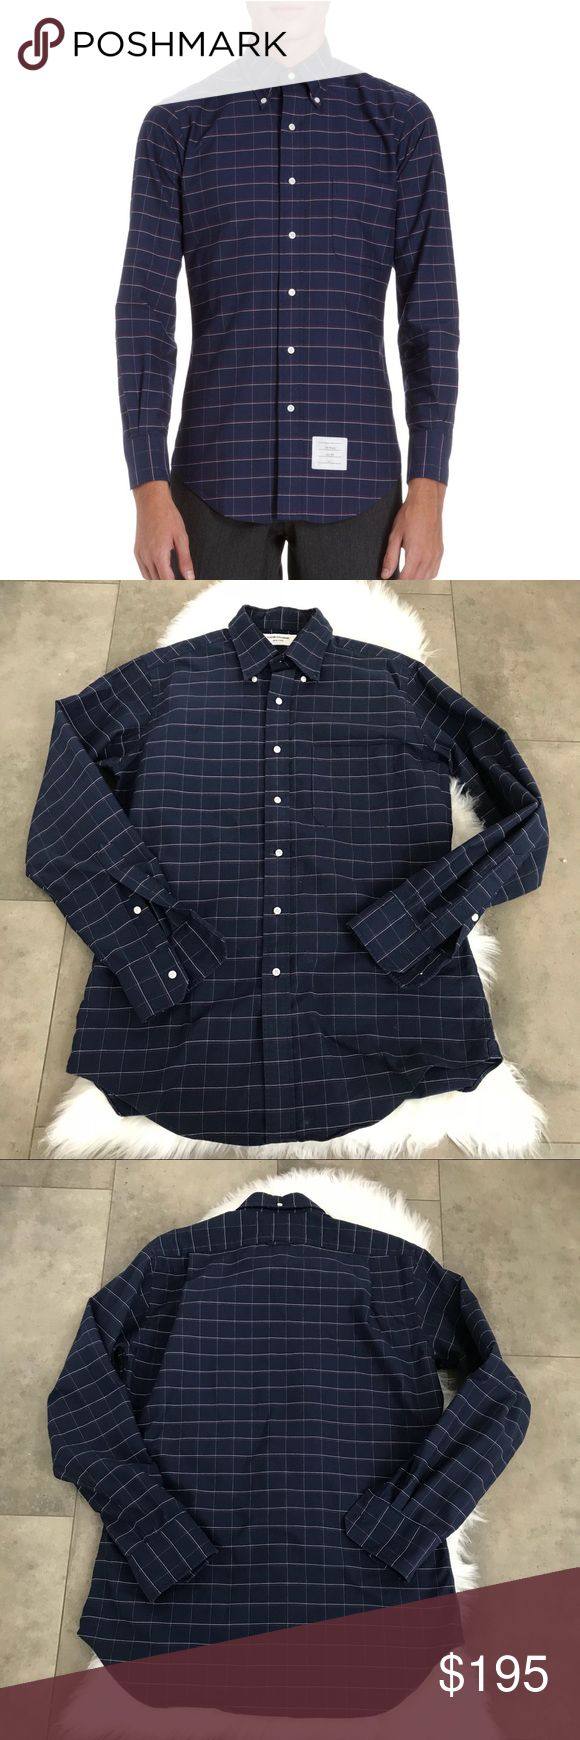 {thom Browne} navy windowpane oxford button down! Thom Browne navy windowpane button down oxford shirt! Colors are navy white and red. Size 4 or XL. Pre love and in great condition. Retails for $425. Excellent quality and structure, doesn't wrinkle. 100 % Cotton. Length is 33 in. Pit to pit is 23 in. I have another thom Browne oxford available for sale. Same size. Bundle and save! Thom Browne Shirts Dress Shirts